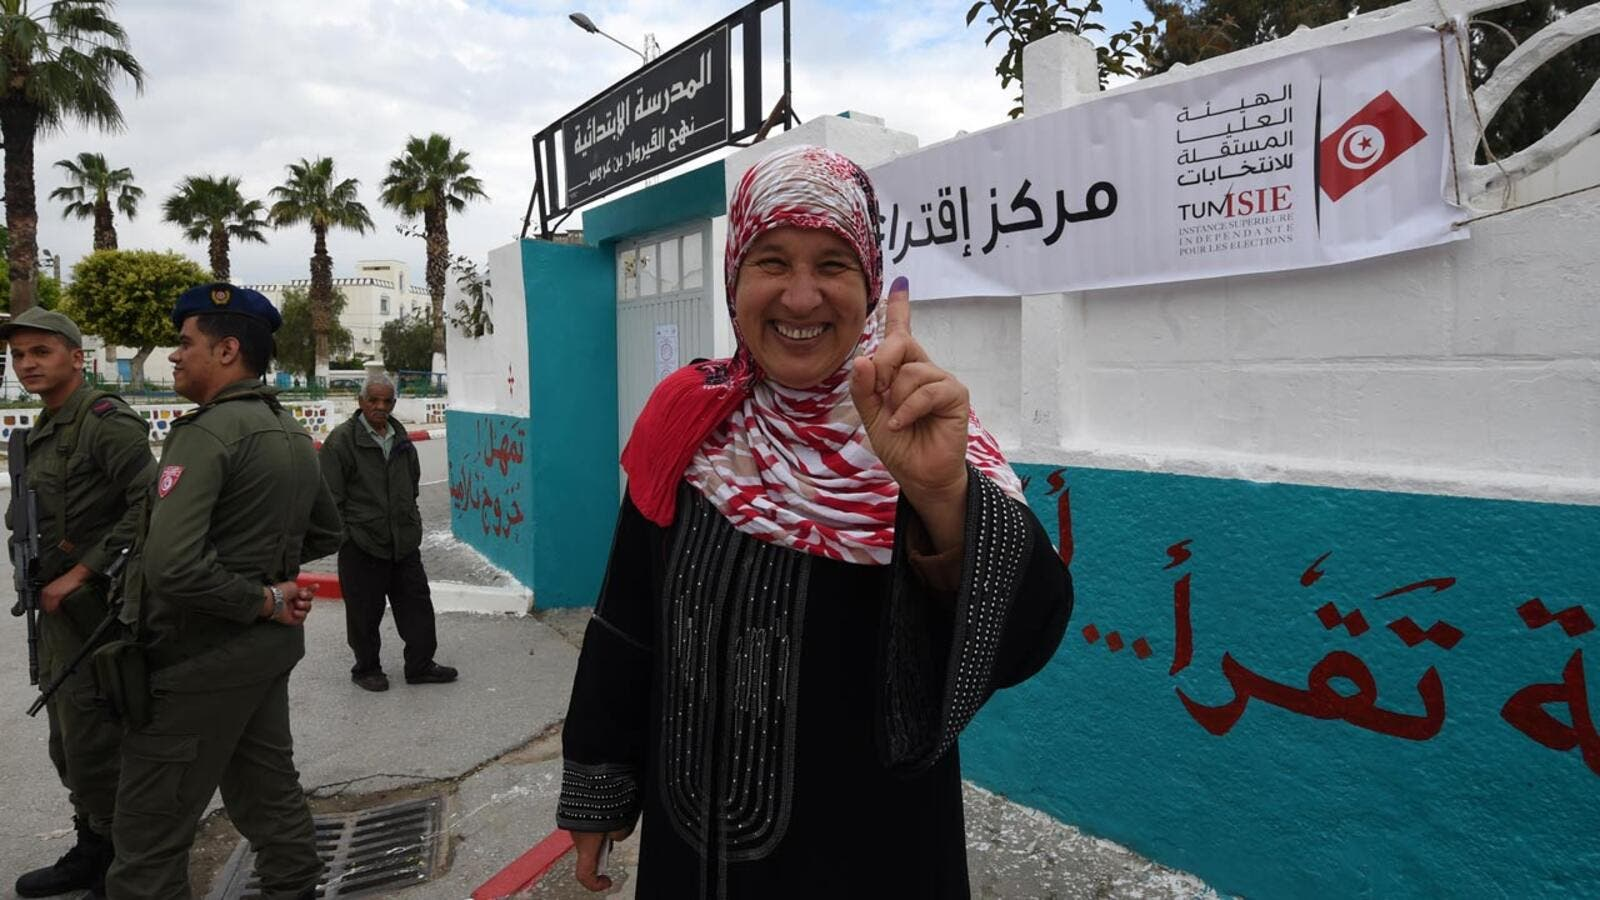 A Tunisian woman voter showcases her ink-stained index finger outside a polling station in Ben Arous near the capital Tunis on May 6, 2018. (AFP/File Photo)